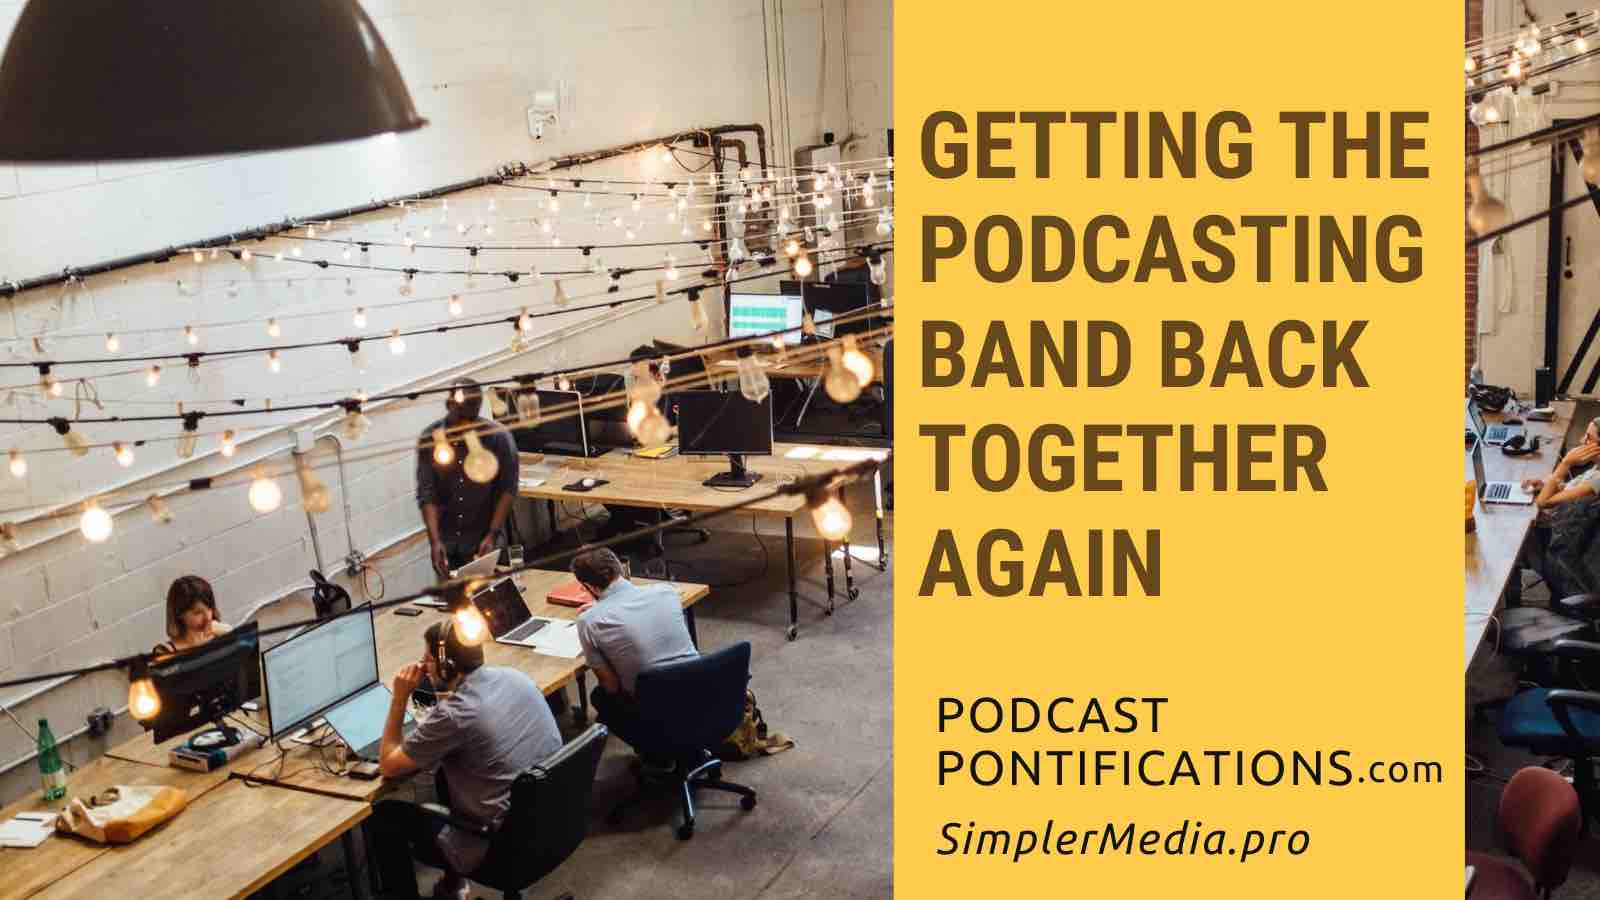 Getting The Podcasting Band Back Together Again